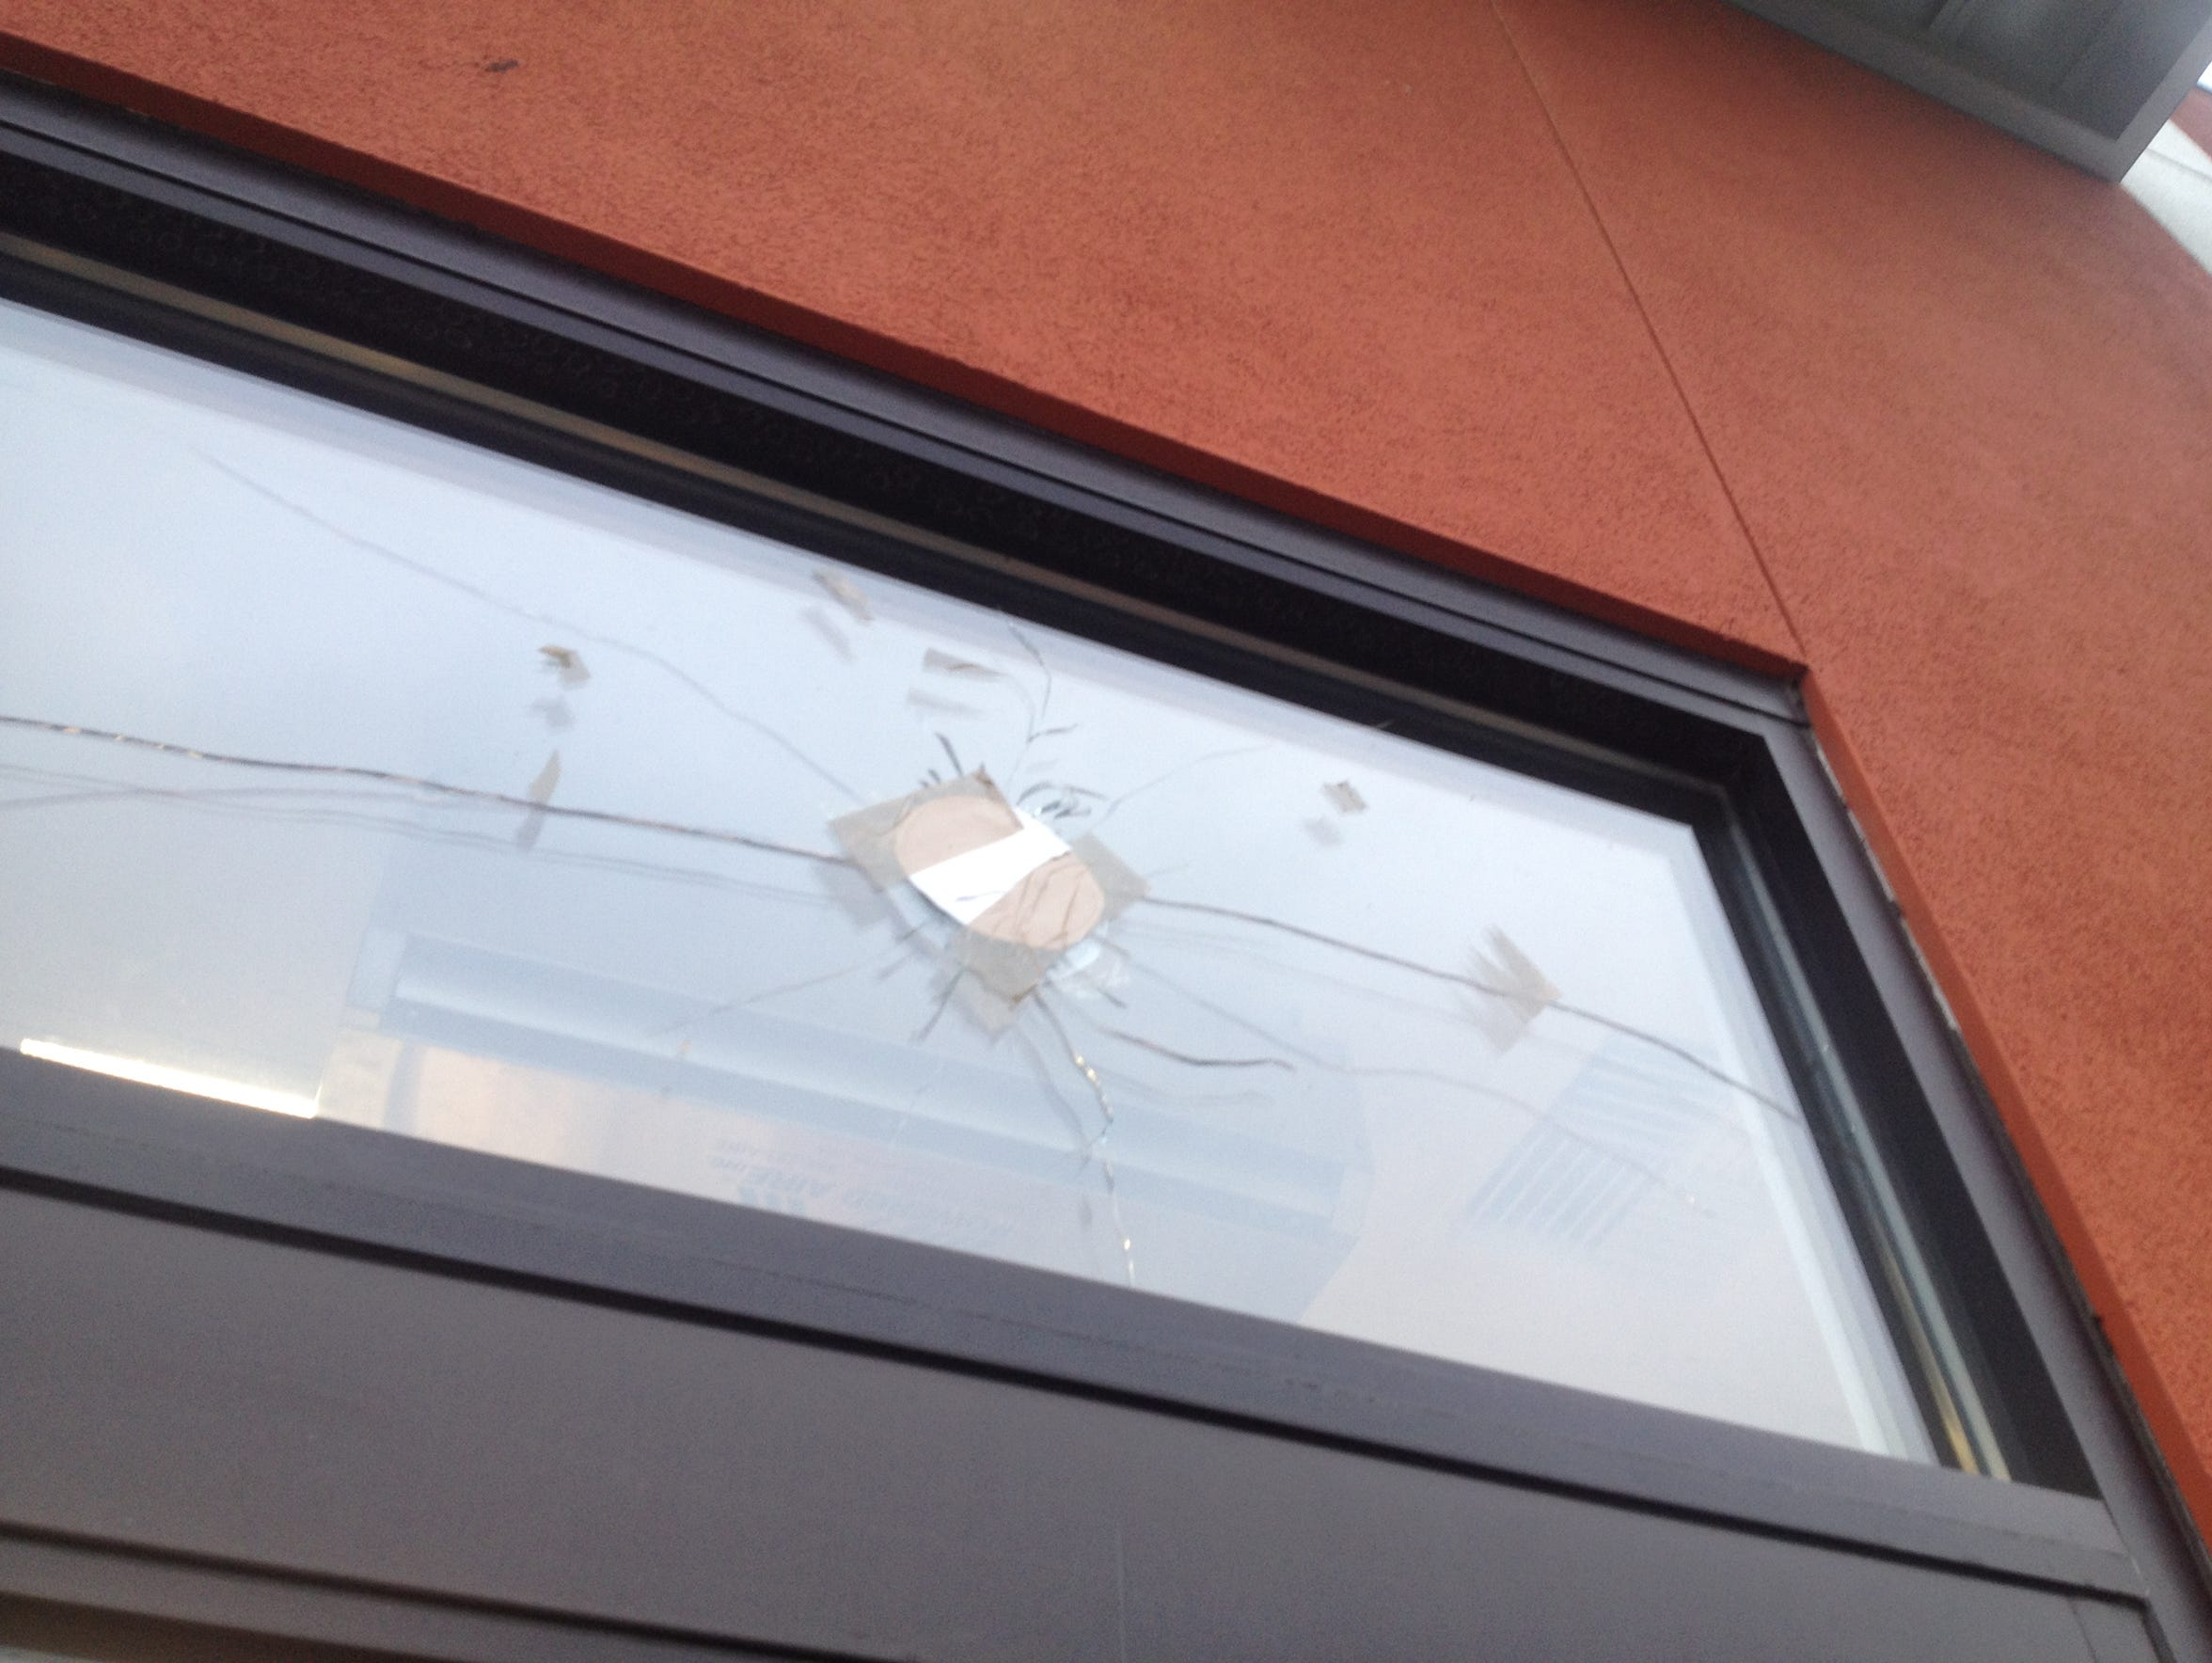 A bullet hole remains in the glass above the drive-thru window of the McDonald's on Williams Road from a shooting two years ago.